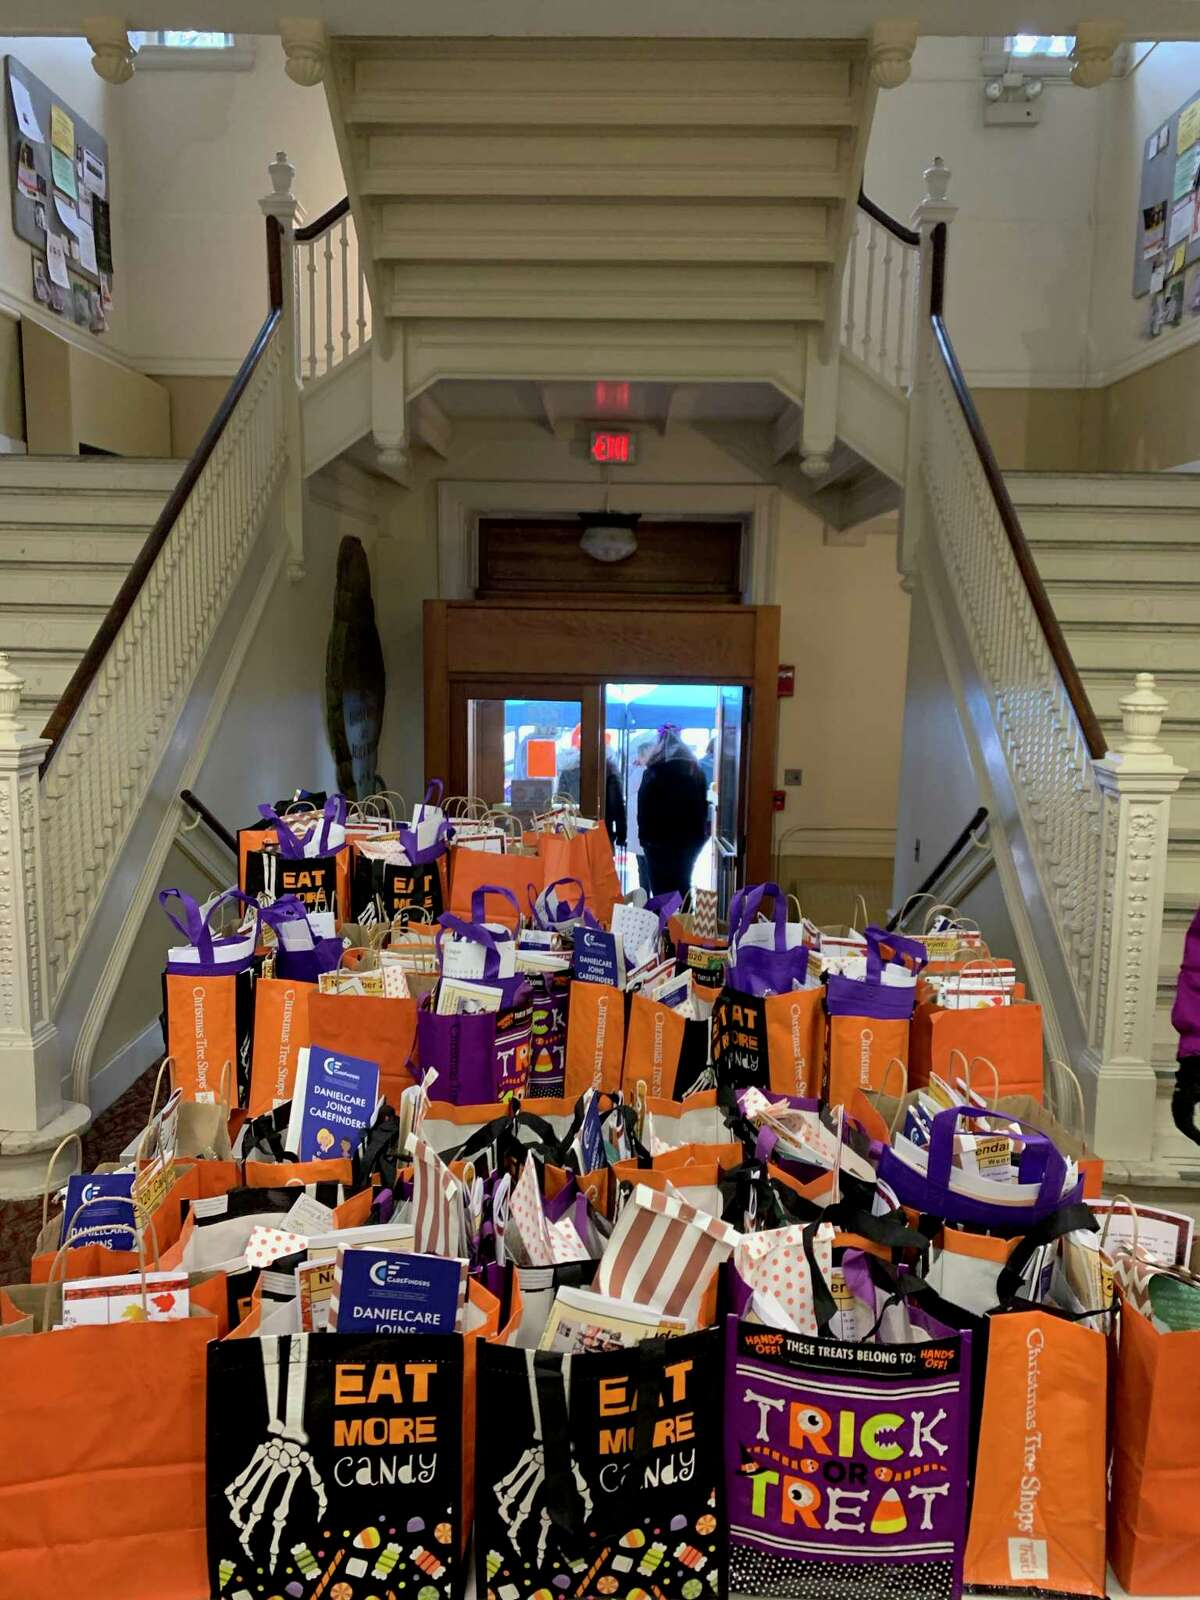 Trick-or-treat bags are distributed at the Teddy's Ready Drive-Thru Halloween Lunch for Greenwich Senior Center members on Friday, Oct. 30. Presented by the Greenwich Commission on Aging, senior center head chef Teddy Torchon and his staff served more than 150 hot lunches and distributed trick-or-treat bags full of candy and goodies from Commission on Aging sponsors. Volunteer sponsors dressed in Halloween costumes and face masks to do a contactless distribution of the bags of treats and the meals. Volunteers included Susan Doyle from Oasis Senior Advisors; Daniel Krause from DanielCare CareFinders; Officer Dan Hendrie from the Greenwich Police Department; Frank Mastrone from Residence on Summer Street; and Corinne Flax from the Bruce Museum.